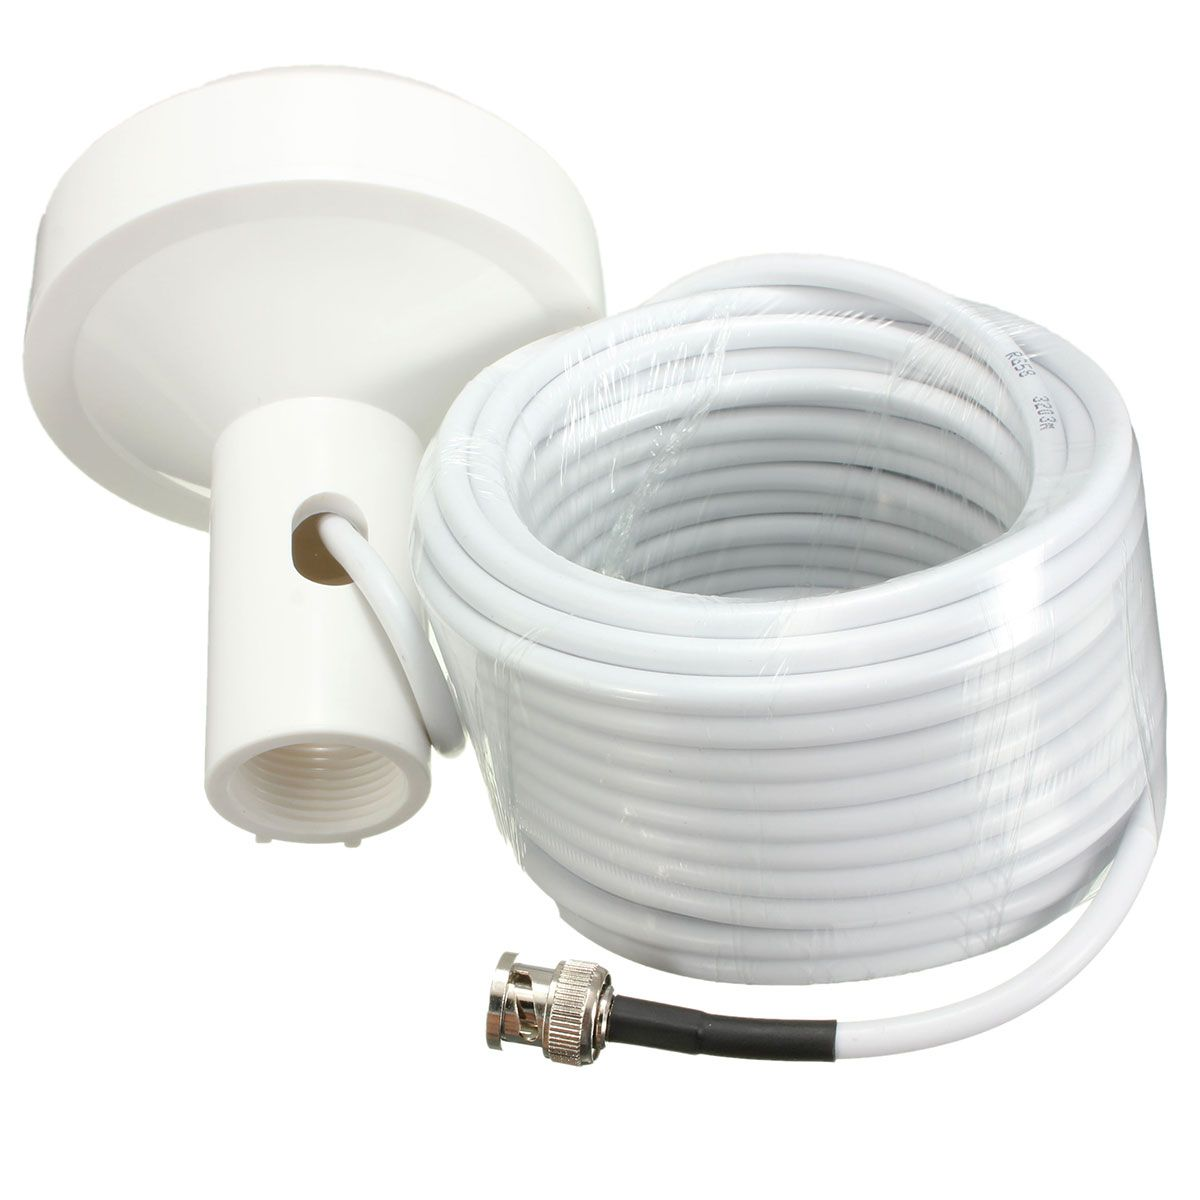 New GPS Active Marine Navigation Antenna 10 Meters With BNC Male Plug Connector